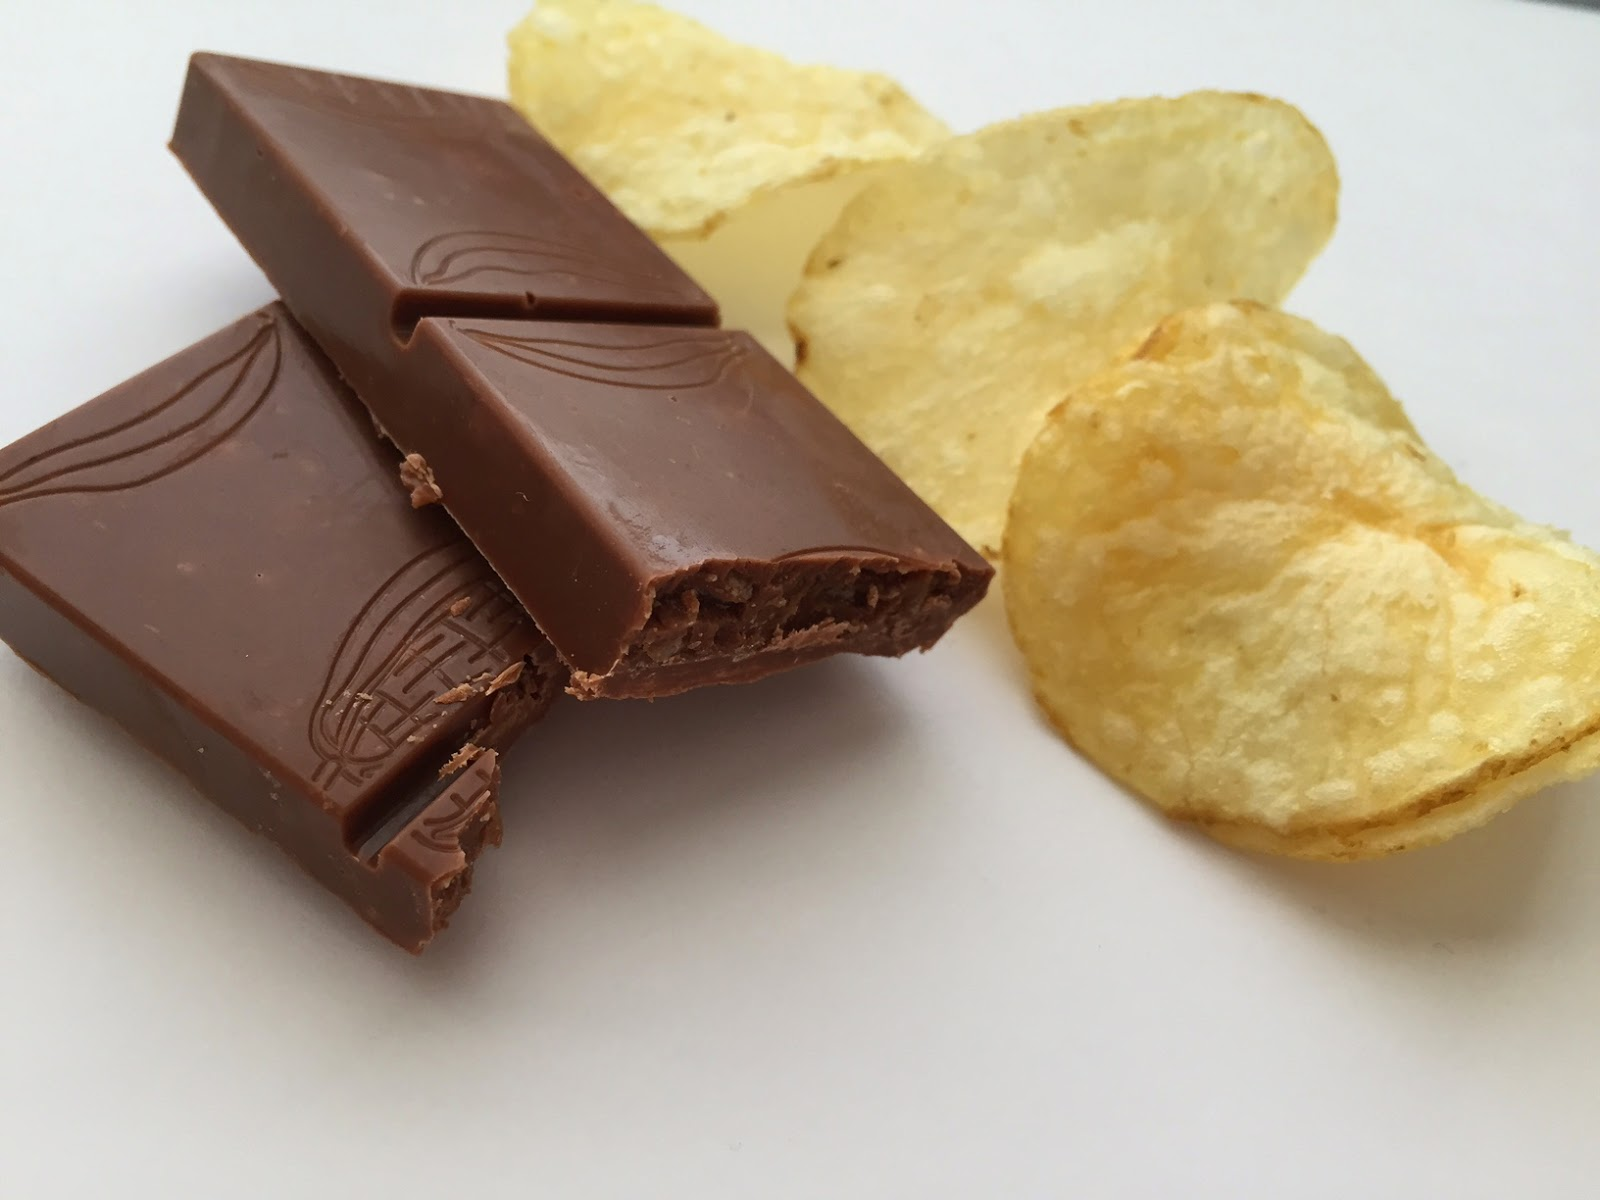 What Can Be Used In Place Of Chocolate Chips